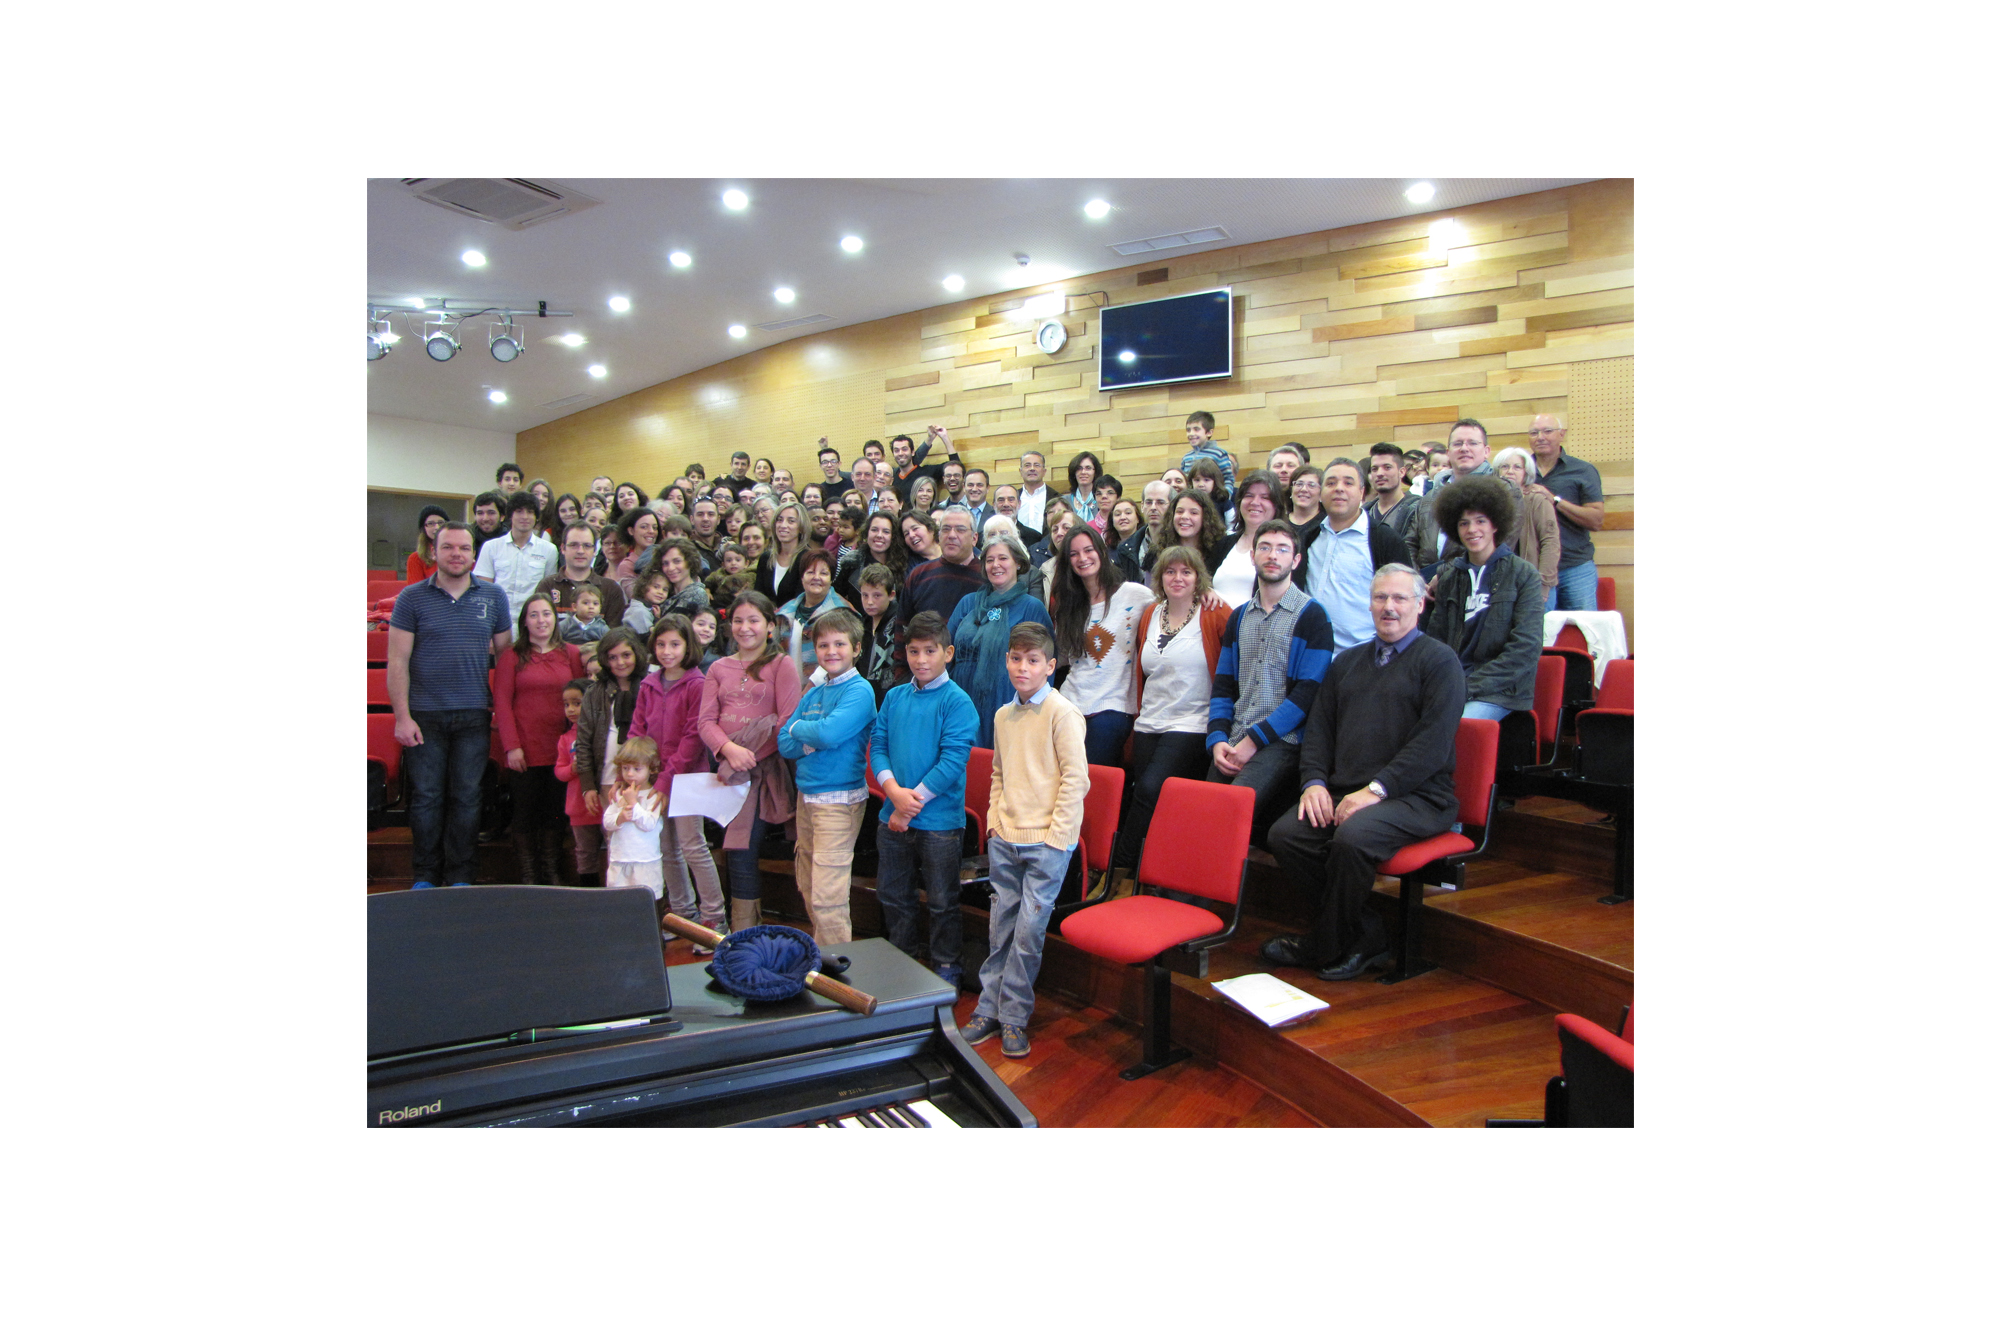 Gathering in the new sanctuary, the church congregation in Ermesinde has grown significantly since its early days meeting in living rooms around the city.